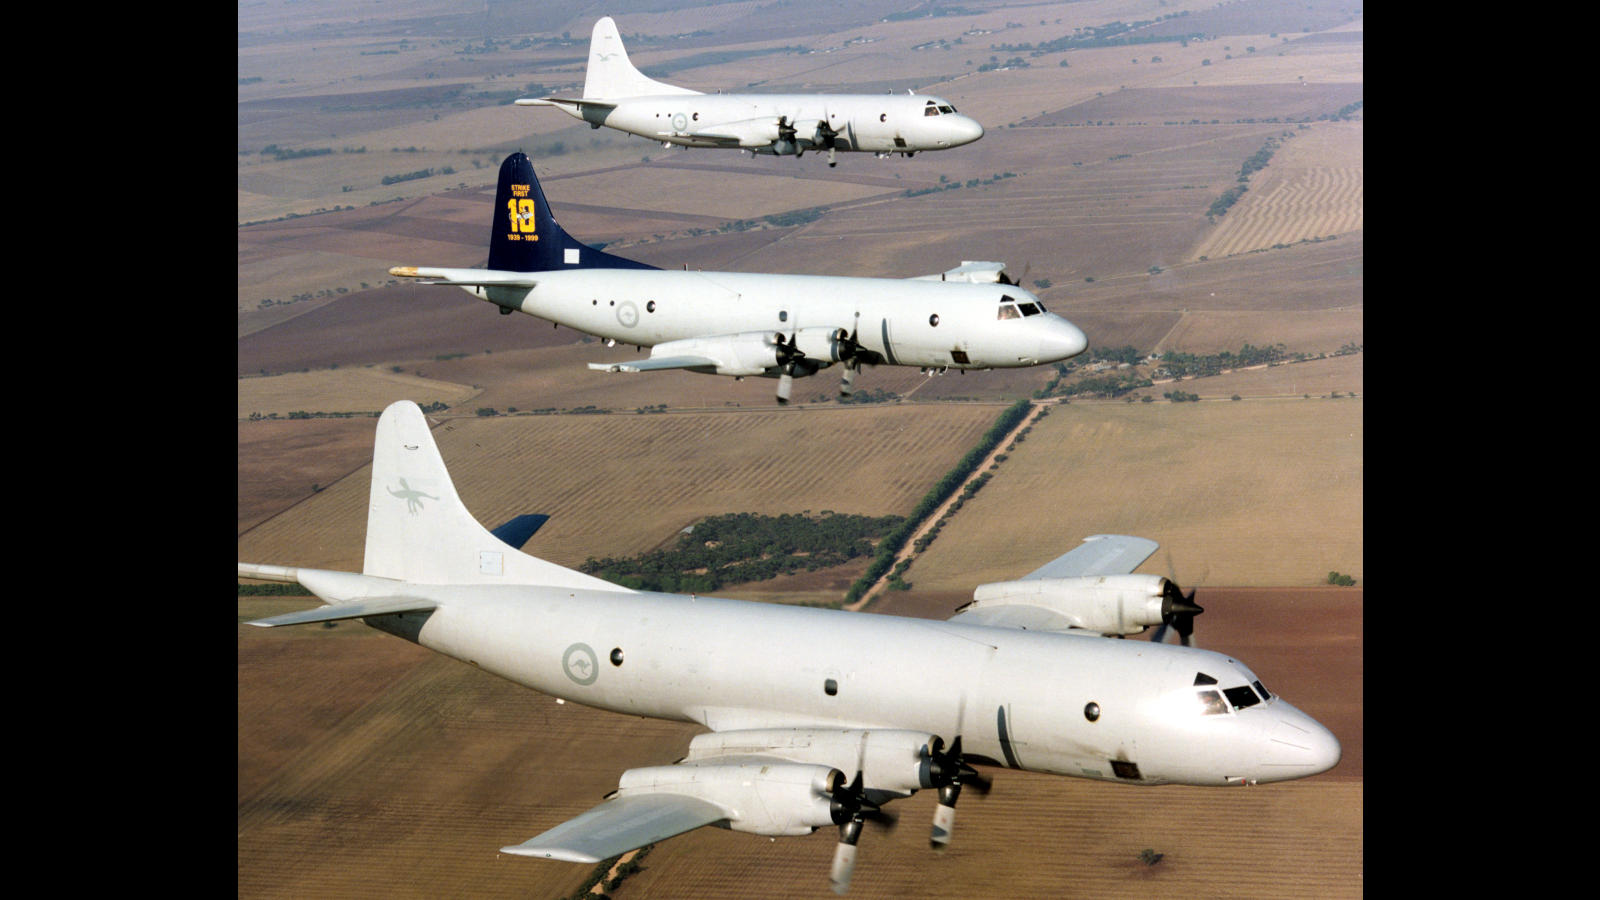 AFIR No: G692K Classification: unclass WHO: WHAT: 3 SHIP FORMATION OF P3'S OVER NORTHERN TRAINING AREA WHEN: 23 FEB 2000 WHERE: RAAF Base Edinburgh WHY: